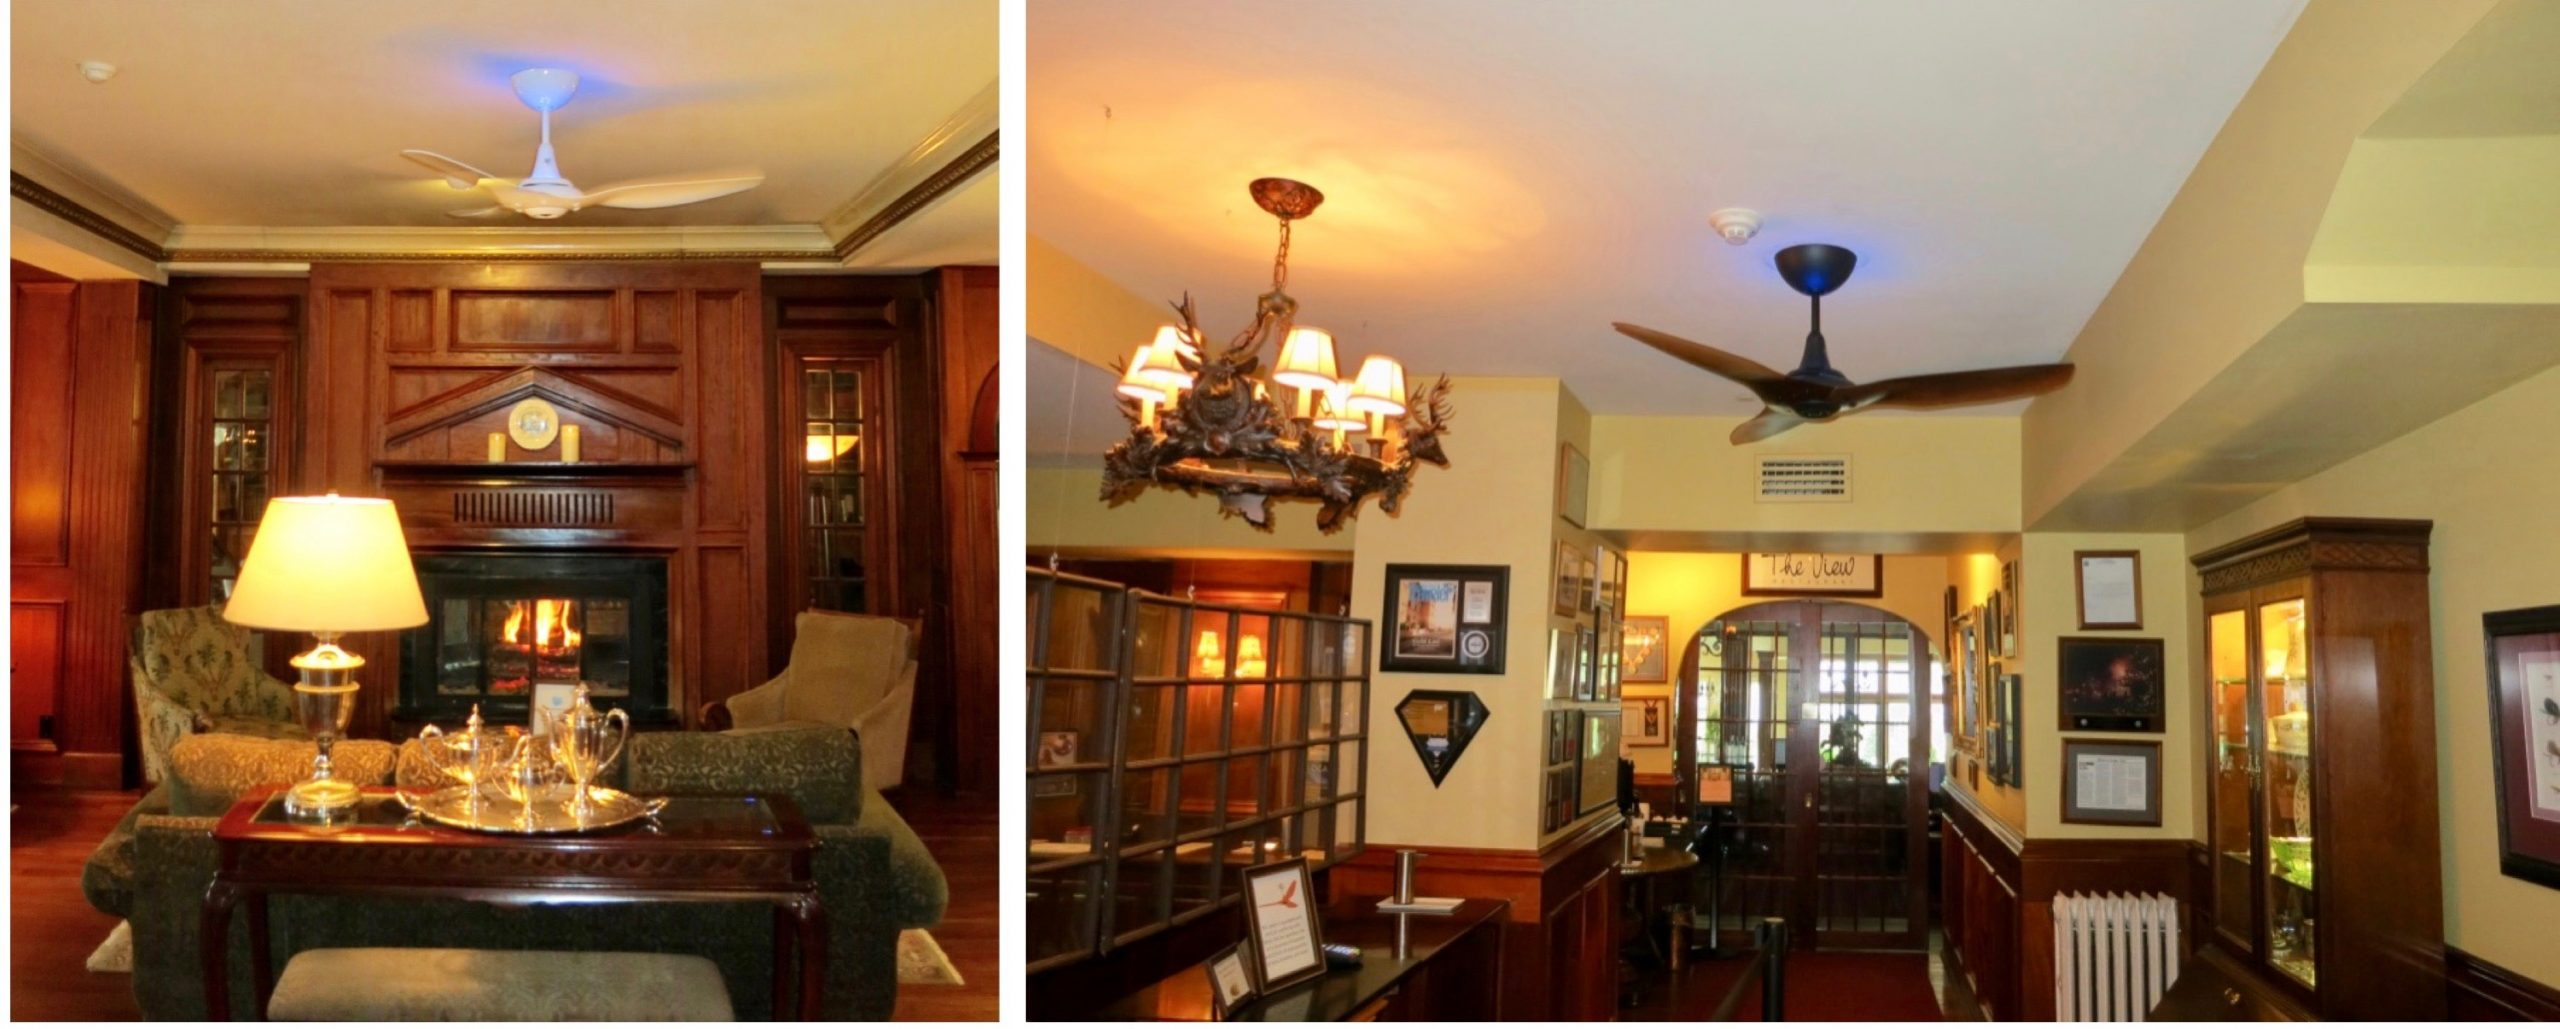 Split image of the hotel lobby and front desk with UV light ceiling fans